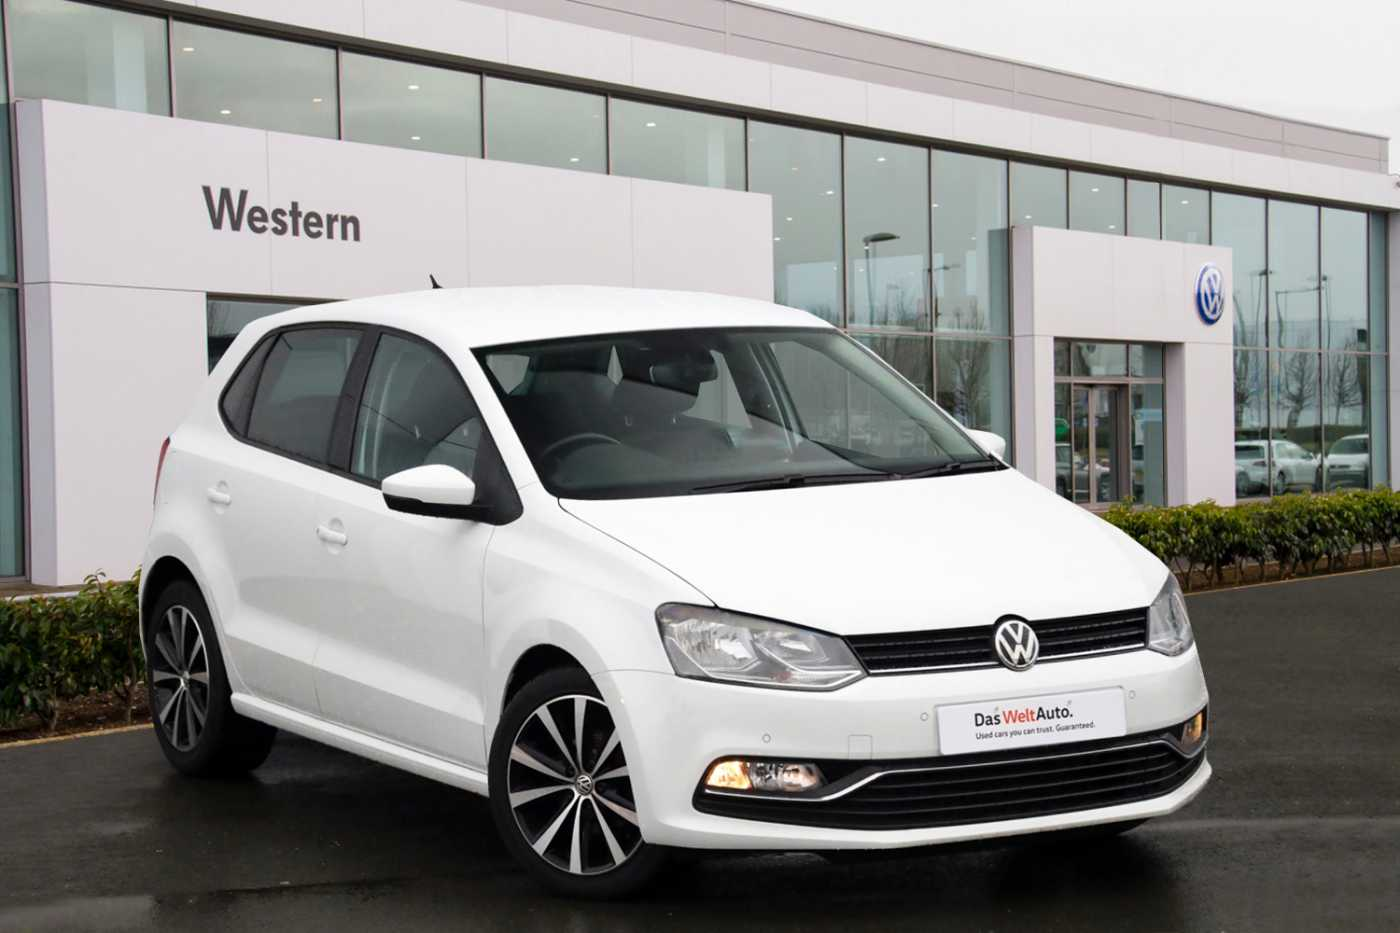 2018 Polo 1.2 TSI Match Edition 90PS 5Dr for Sale in Edinburgh